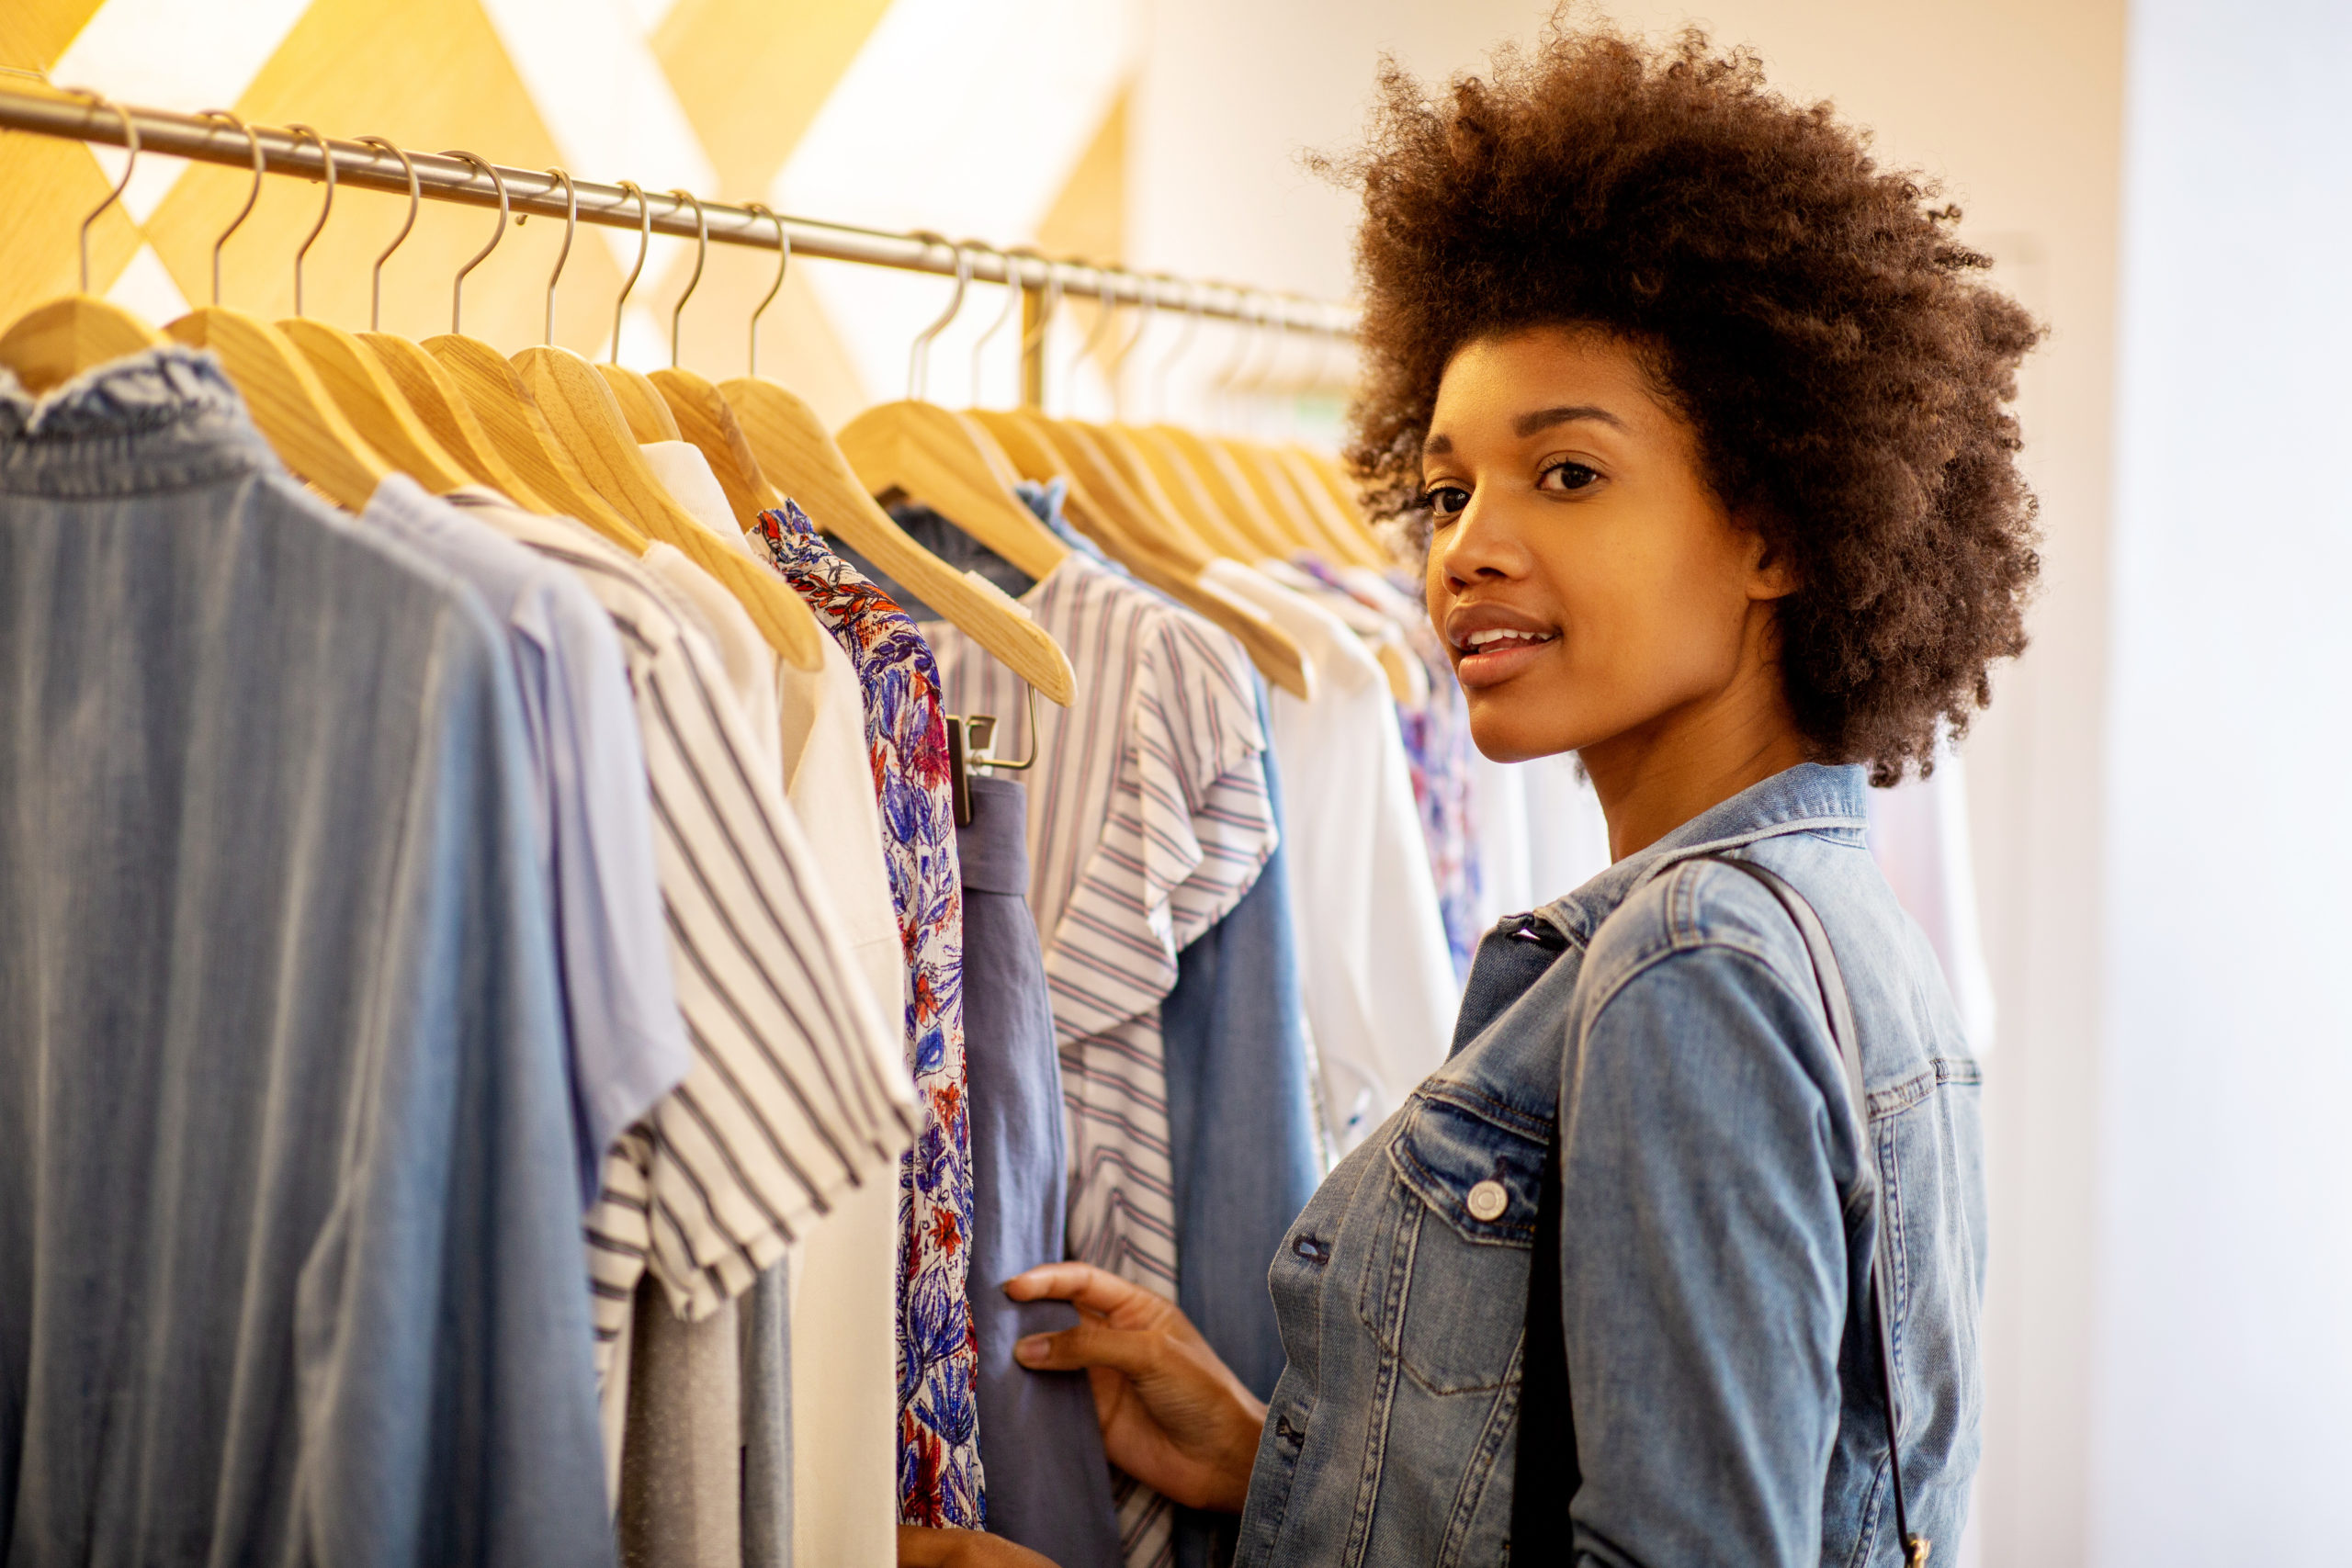 Woman shopping for clothes at clothes rack